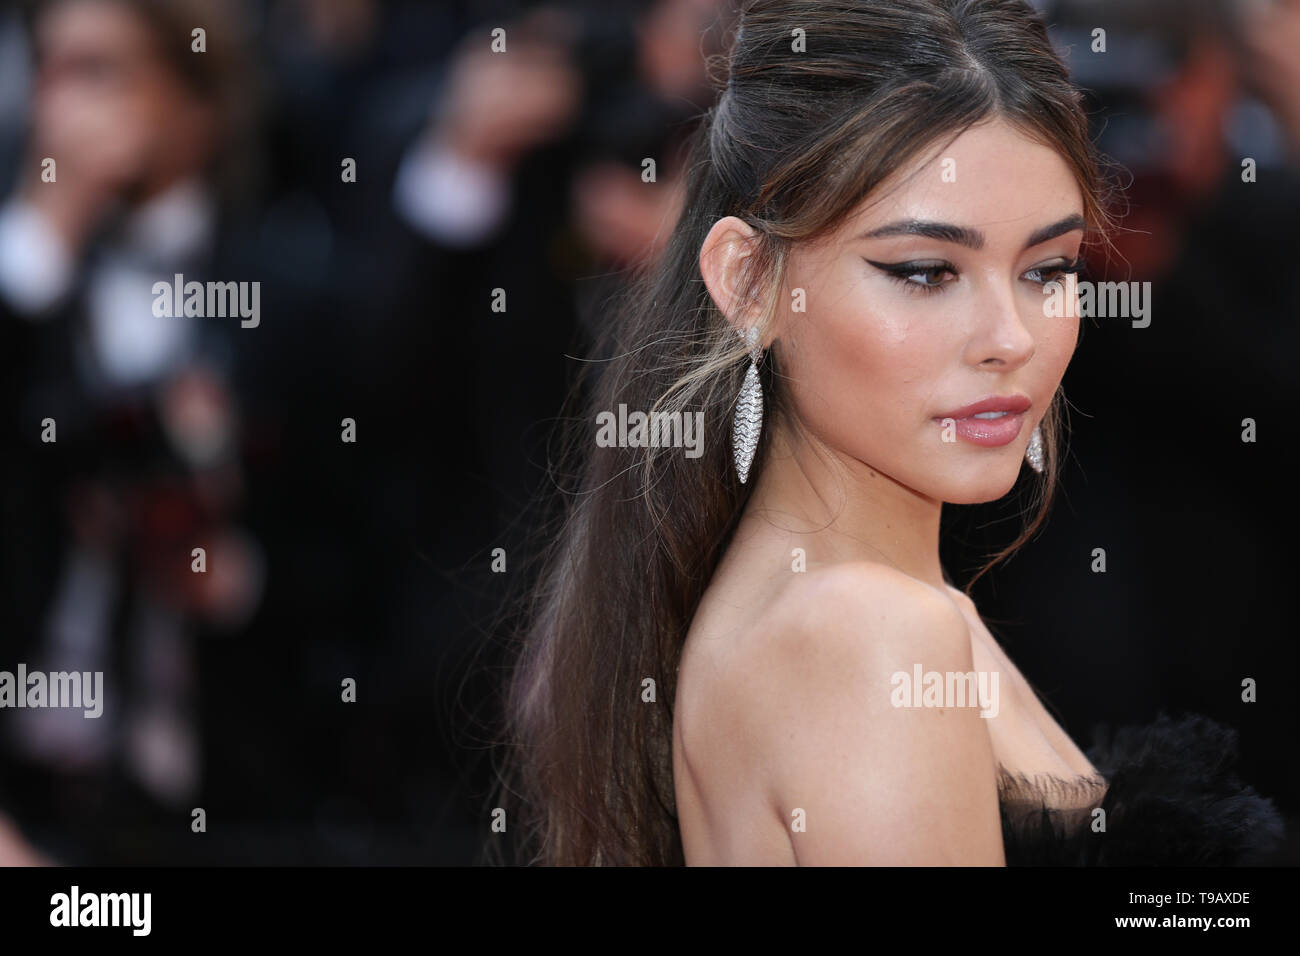 332aa0817e14 Madison Beer Stock Photos & Madison Beer Stock Images - Alamy